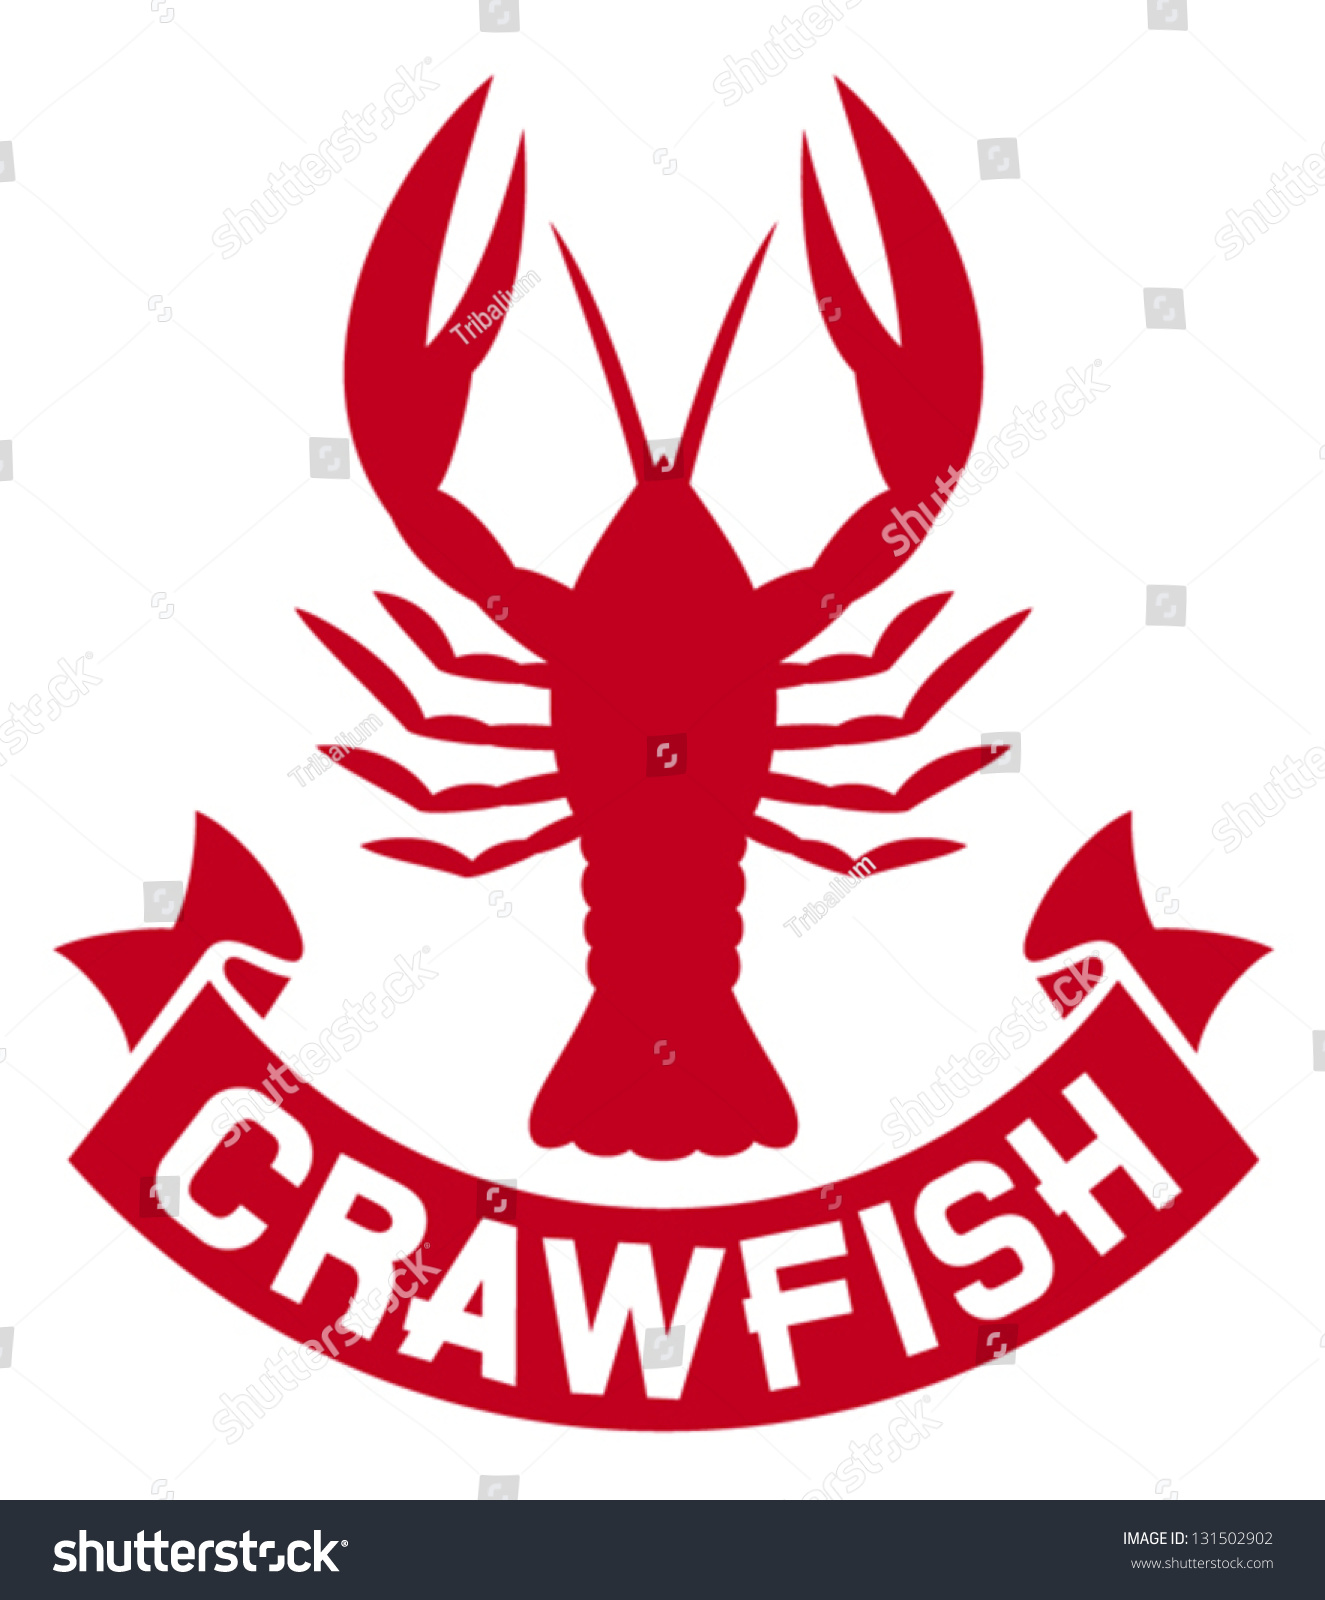 Crawfish Label Crayfish Icon Lobster Sign Stock Vector 131502902 - Shutterstock